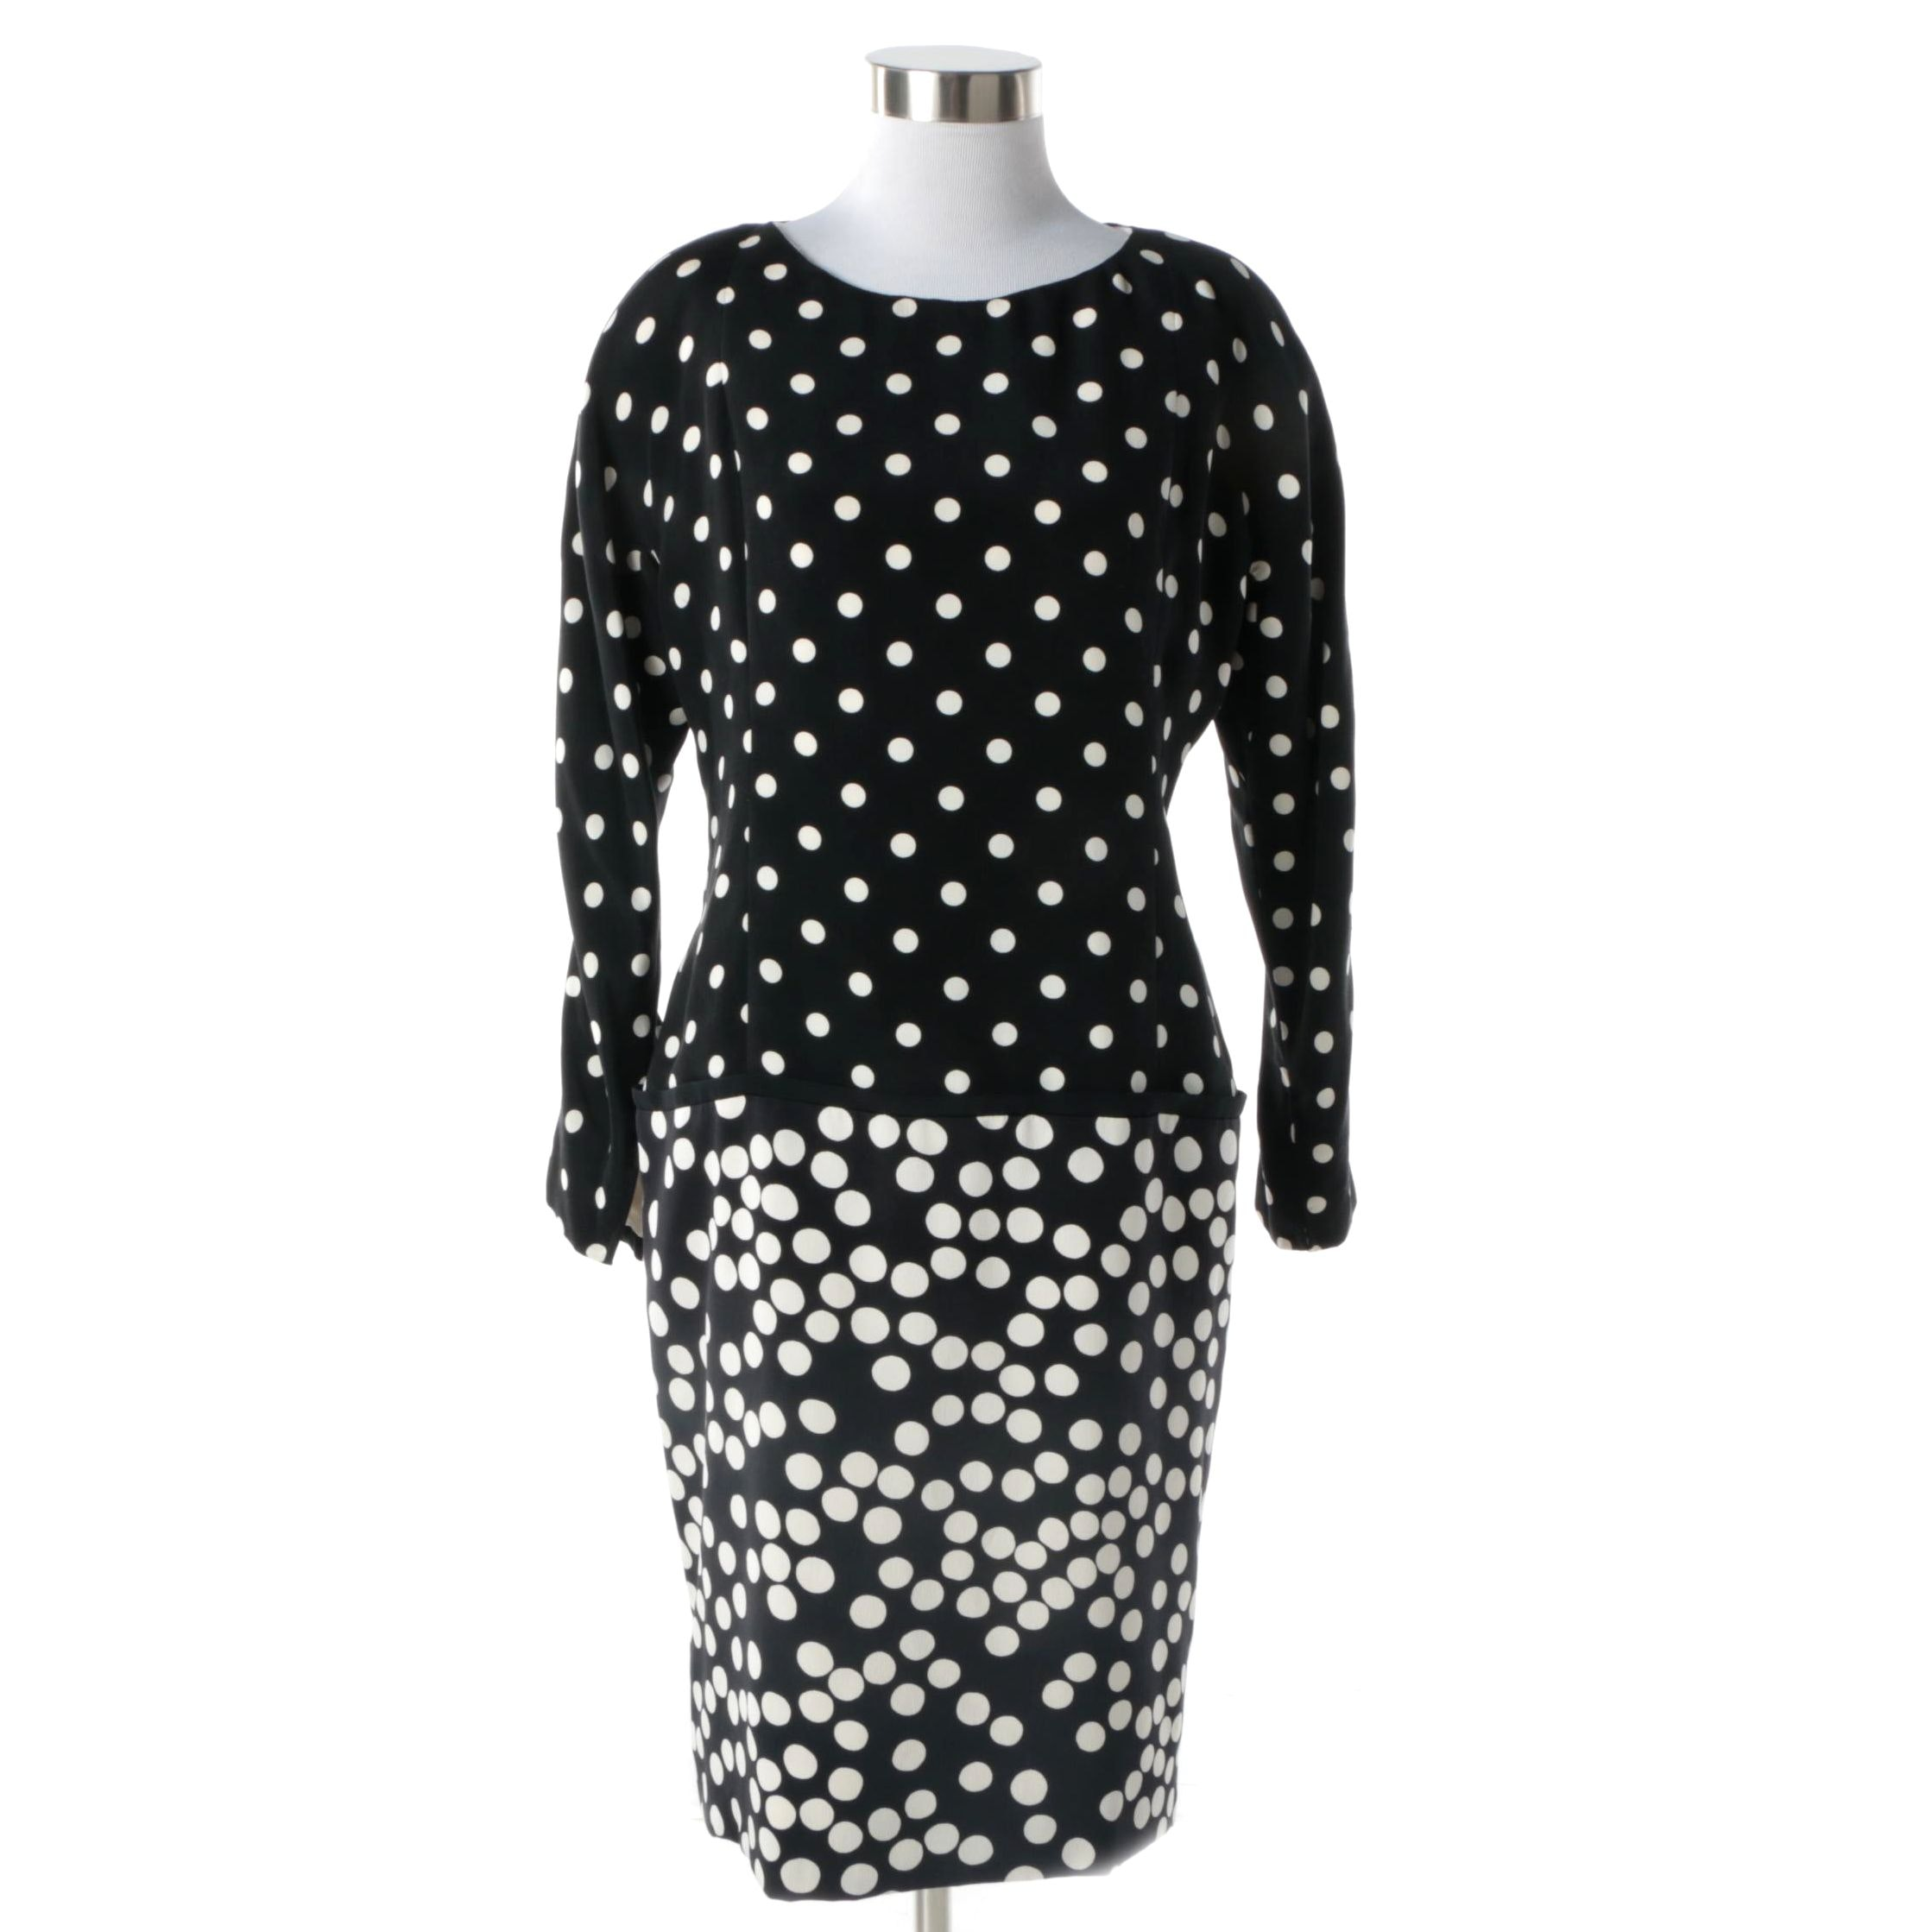 1980s Vintage Galanos Drop Waist Black and White Polkadot Cocktail Dress